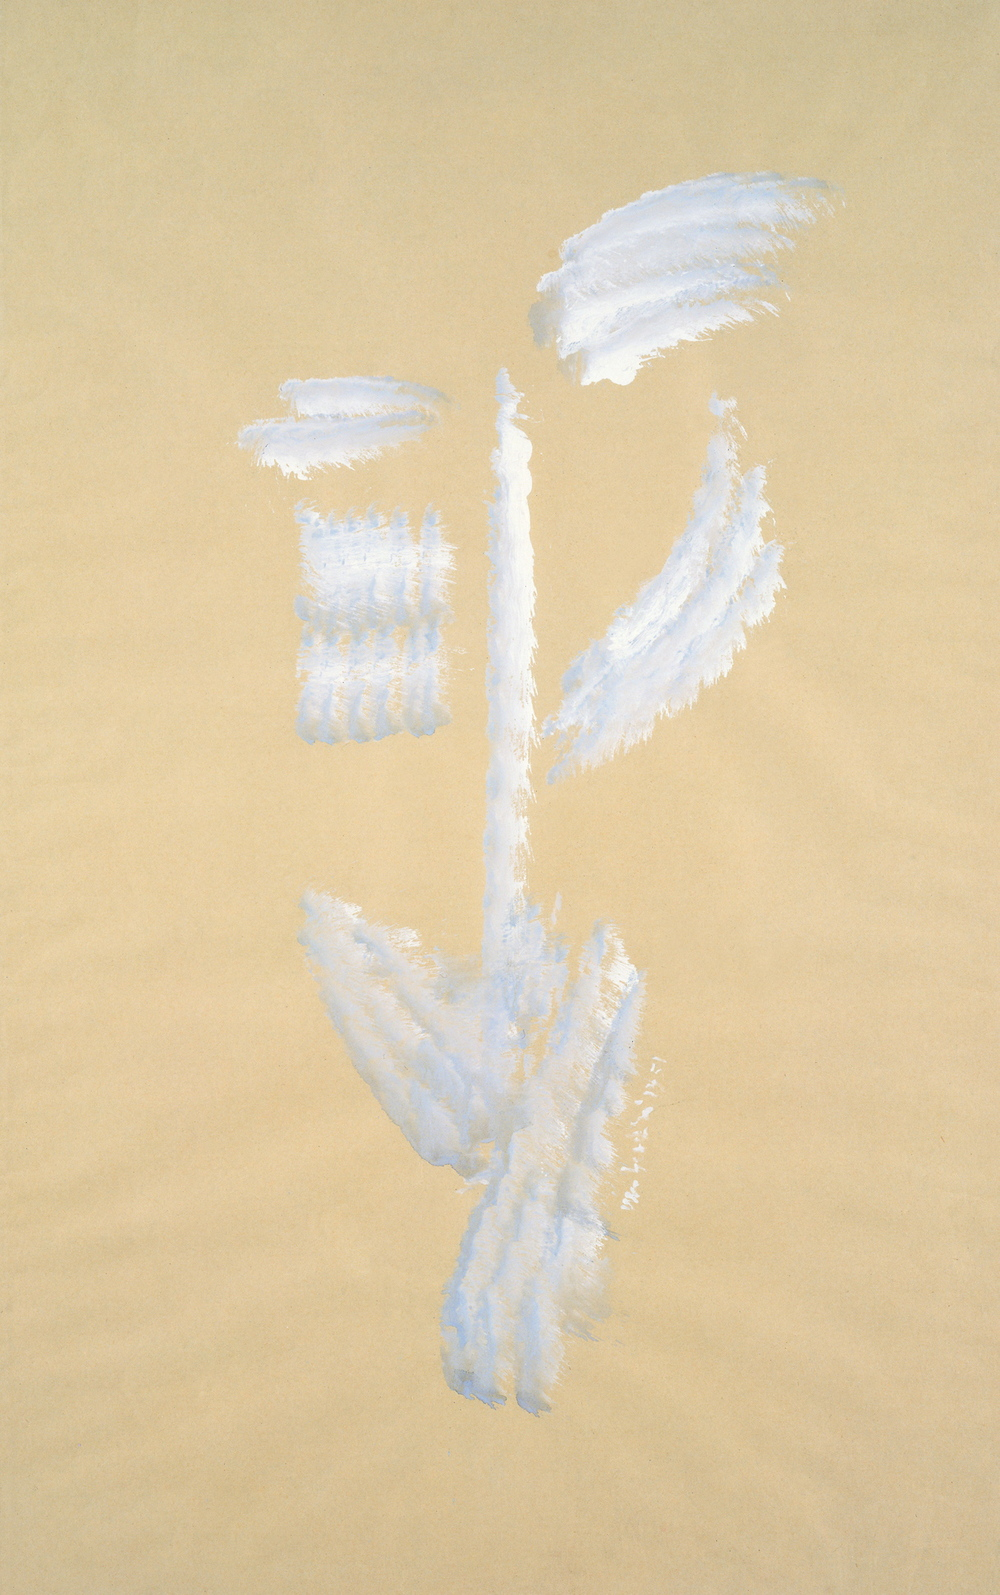 senza titolo, 1951, tempera su carta, cm 78,5 x 49  untitled, 1951, tempera on paper, cm 78,5 x 49